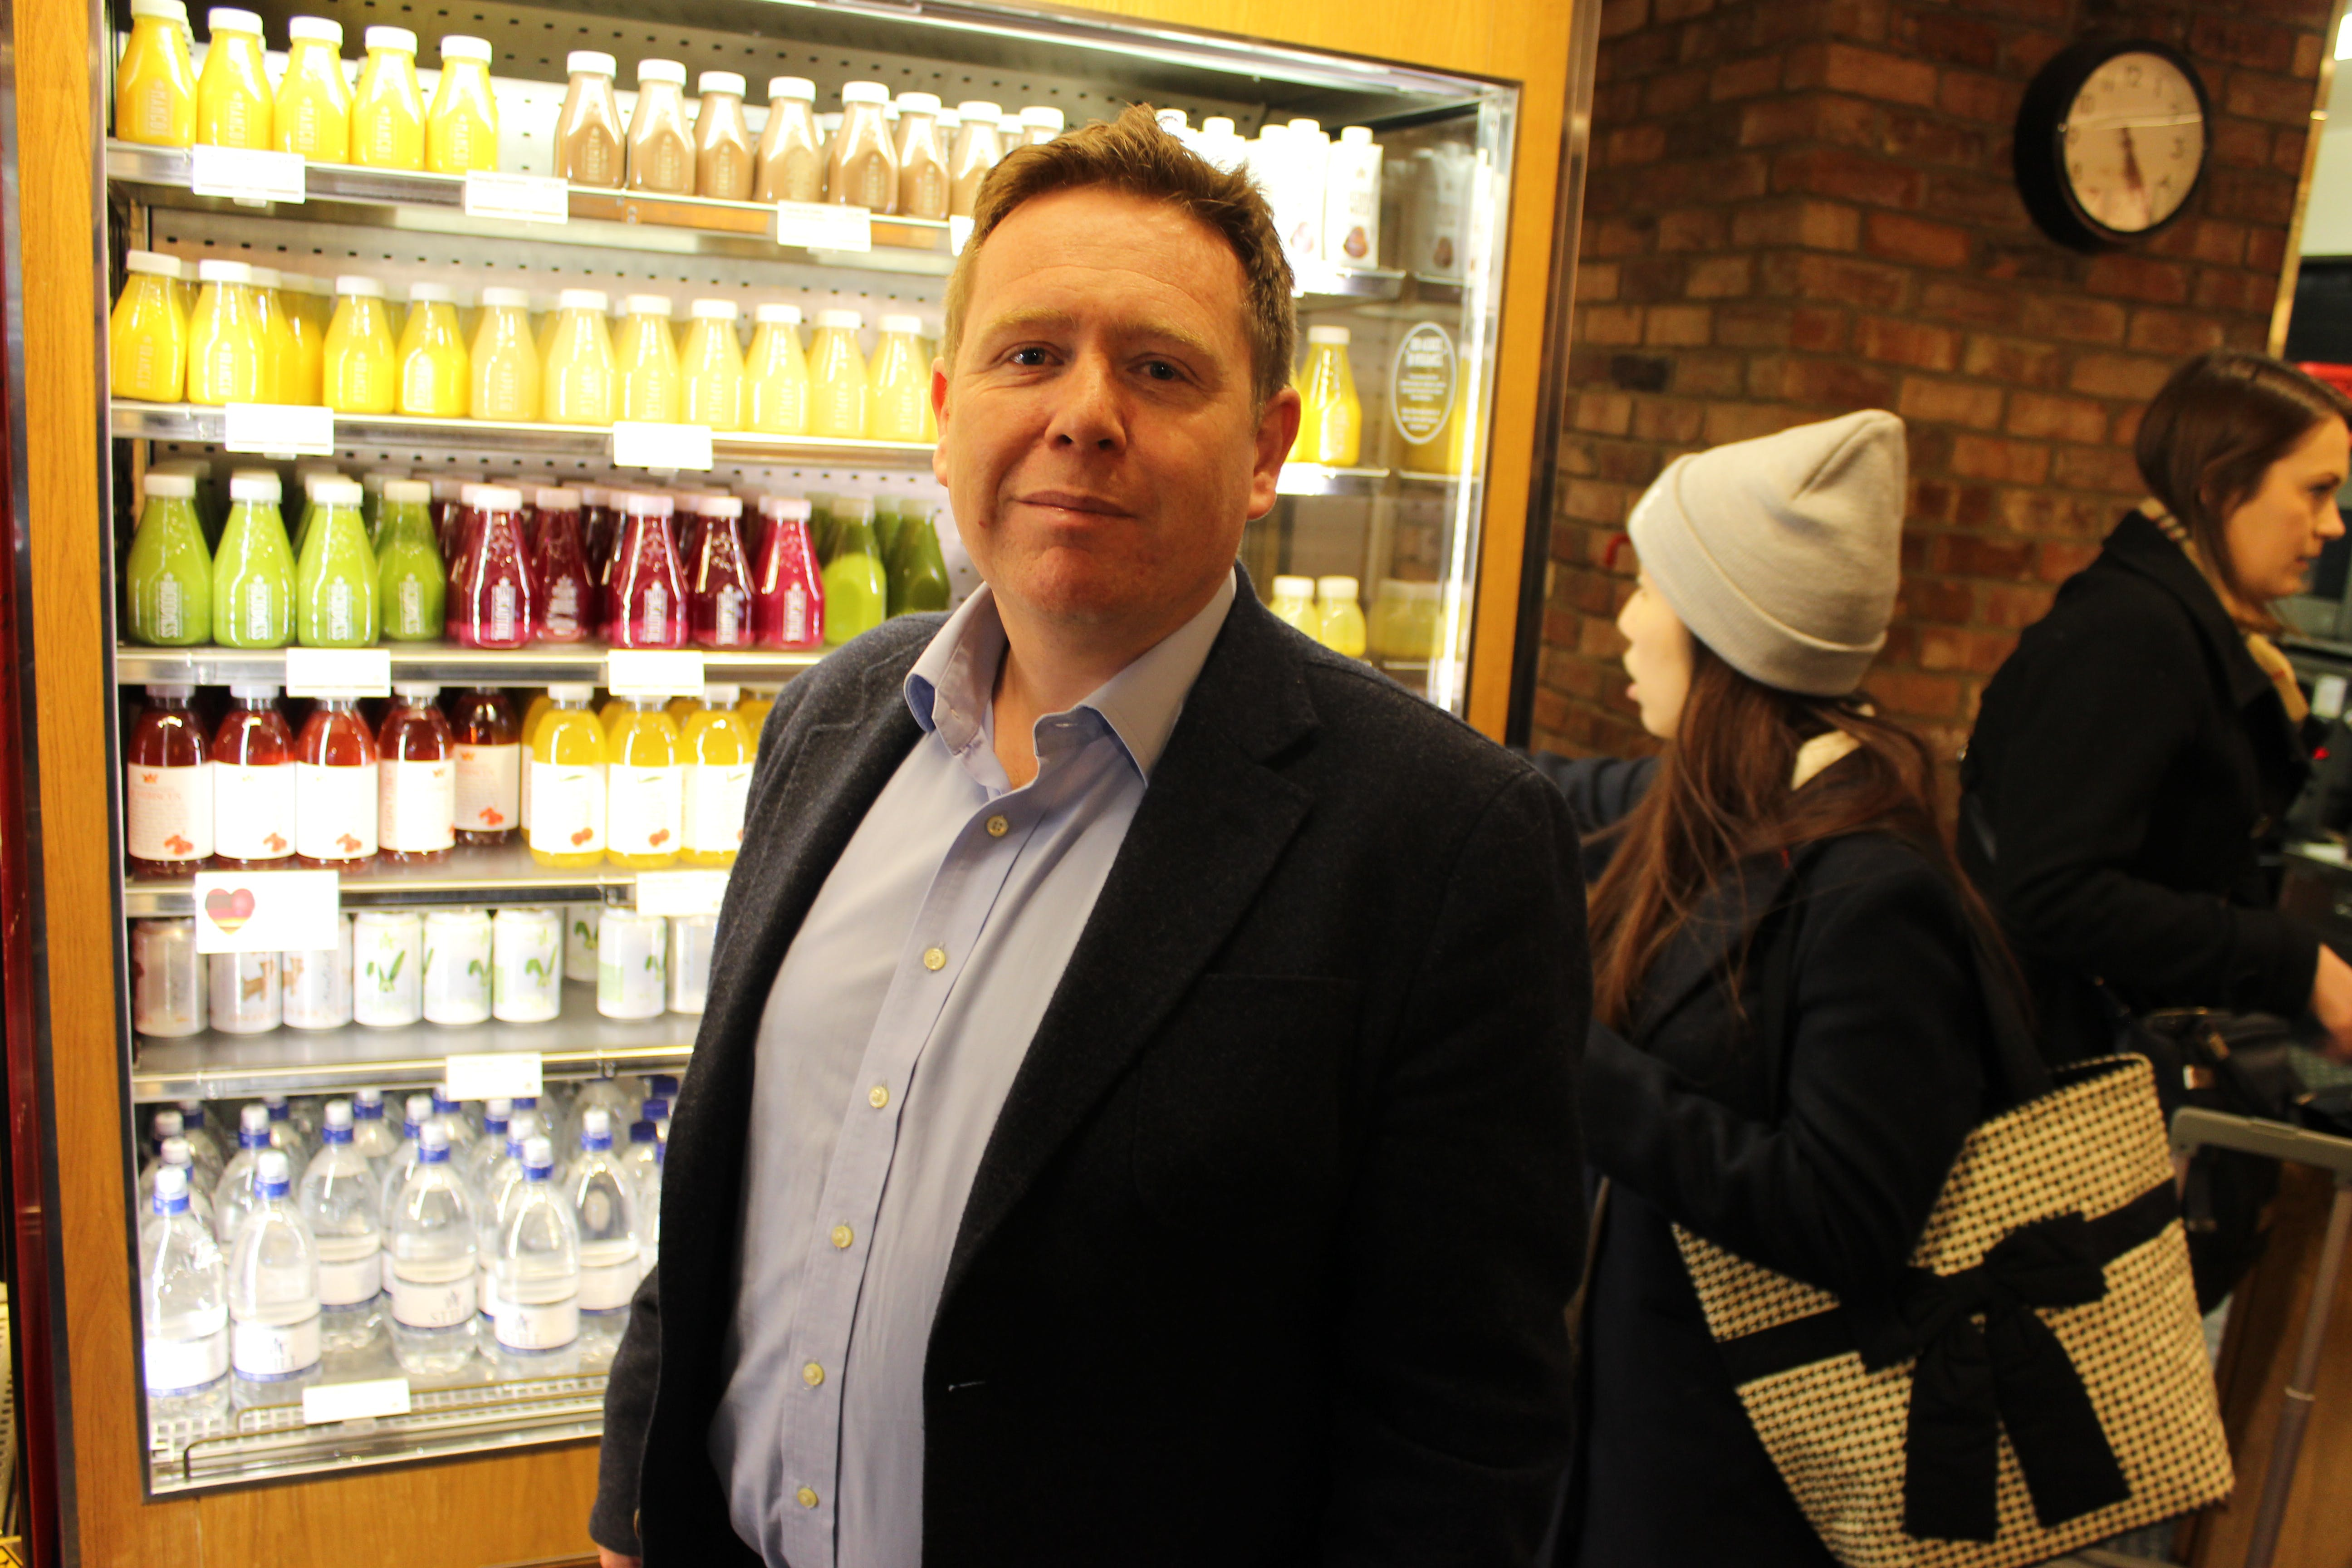 Pret's marketing director Mark Palmer sats it expects it to open over 30 new shops this year